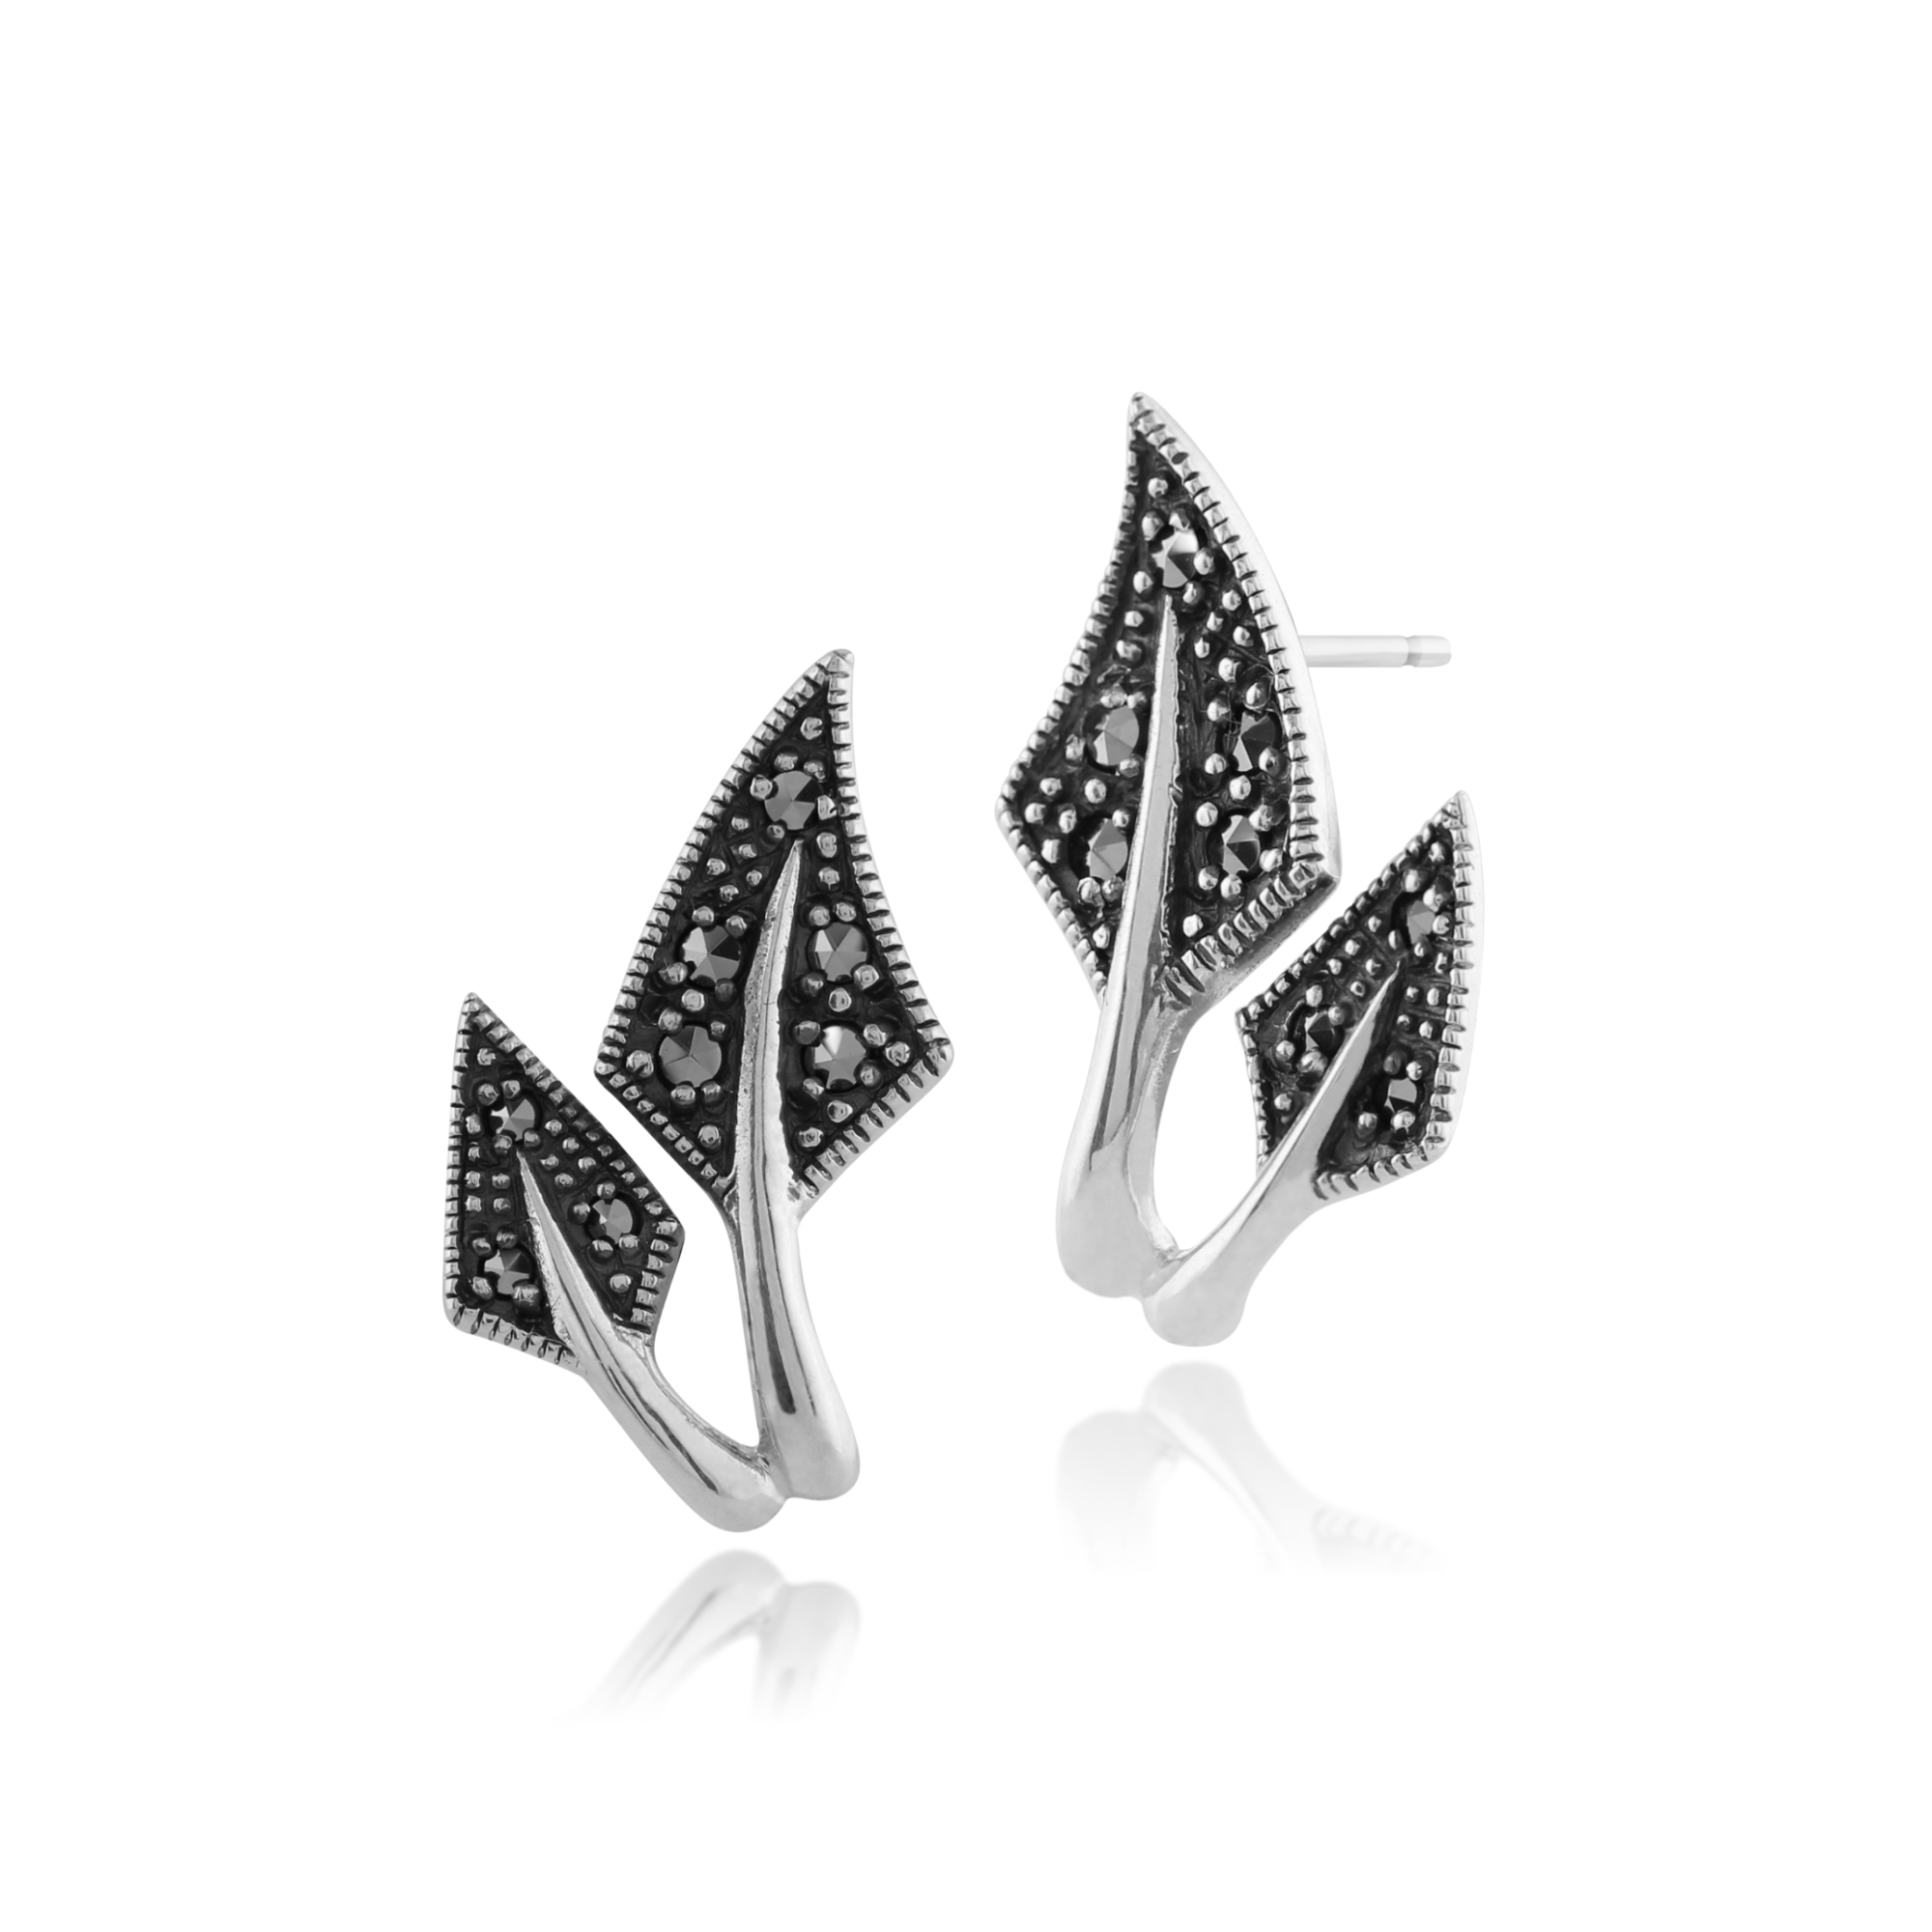 Gemondo 925 Sterling Silver 0.22ct Marcasite Leaf Design Earrings